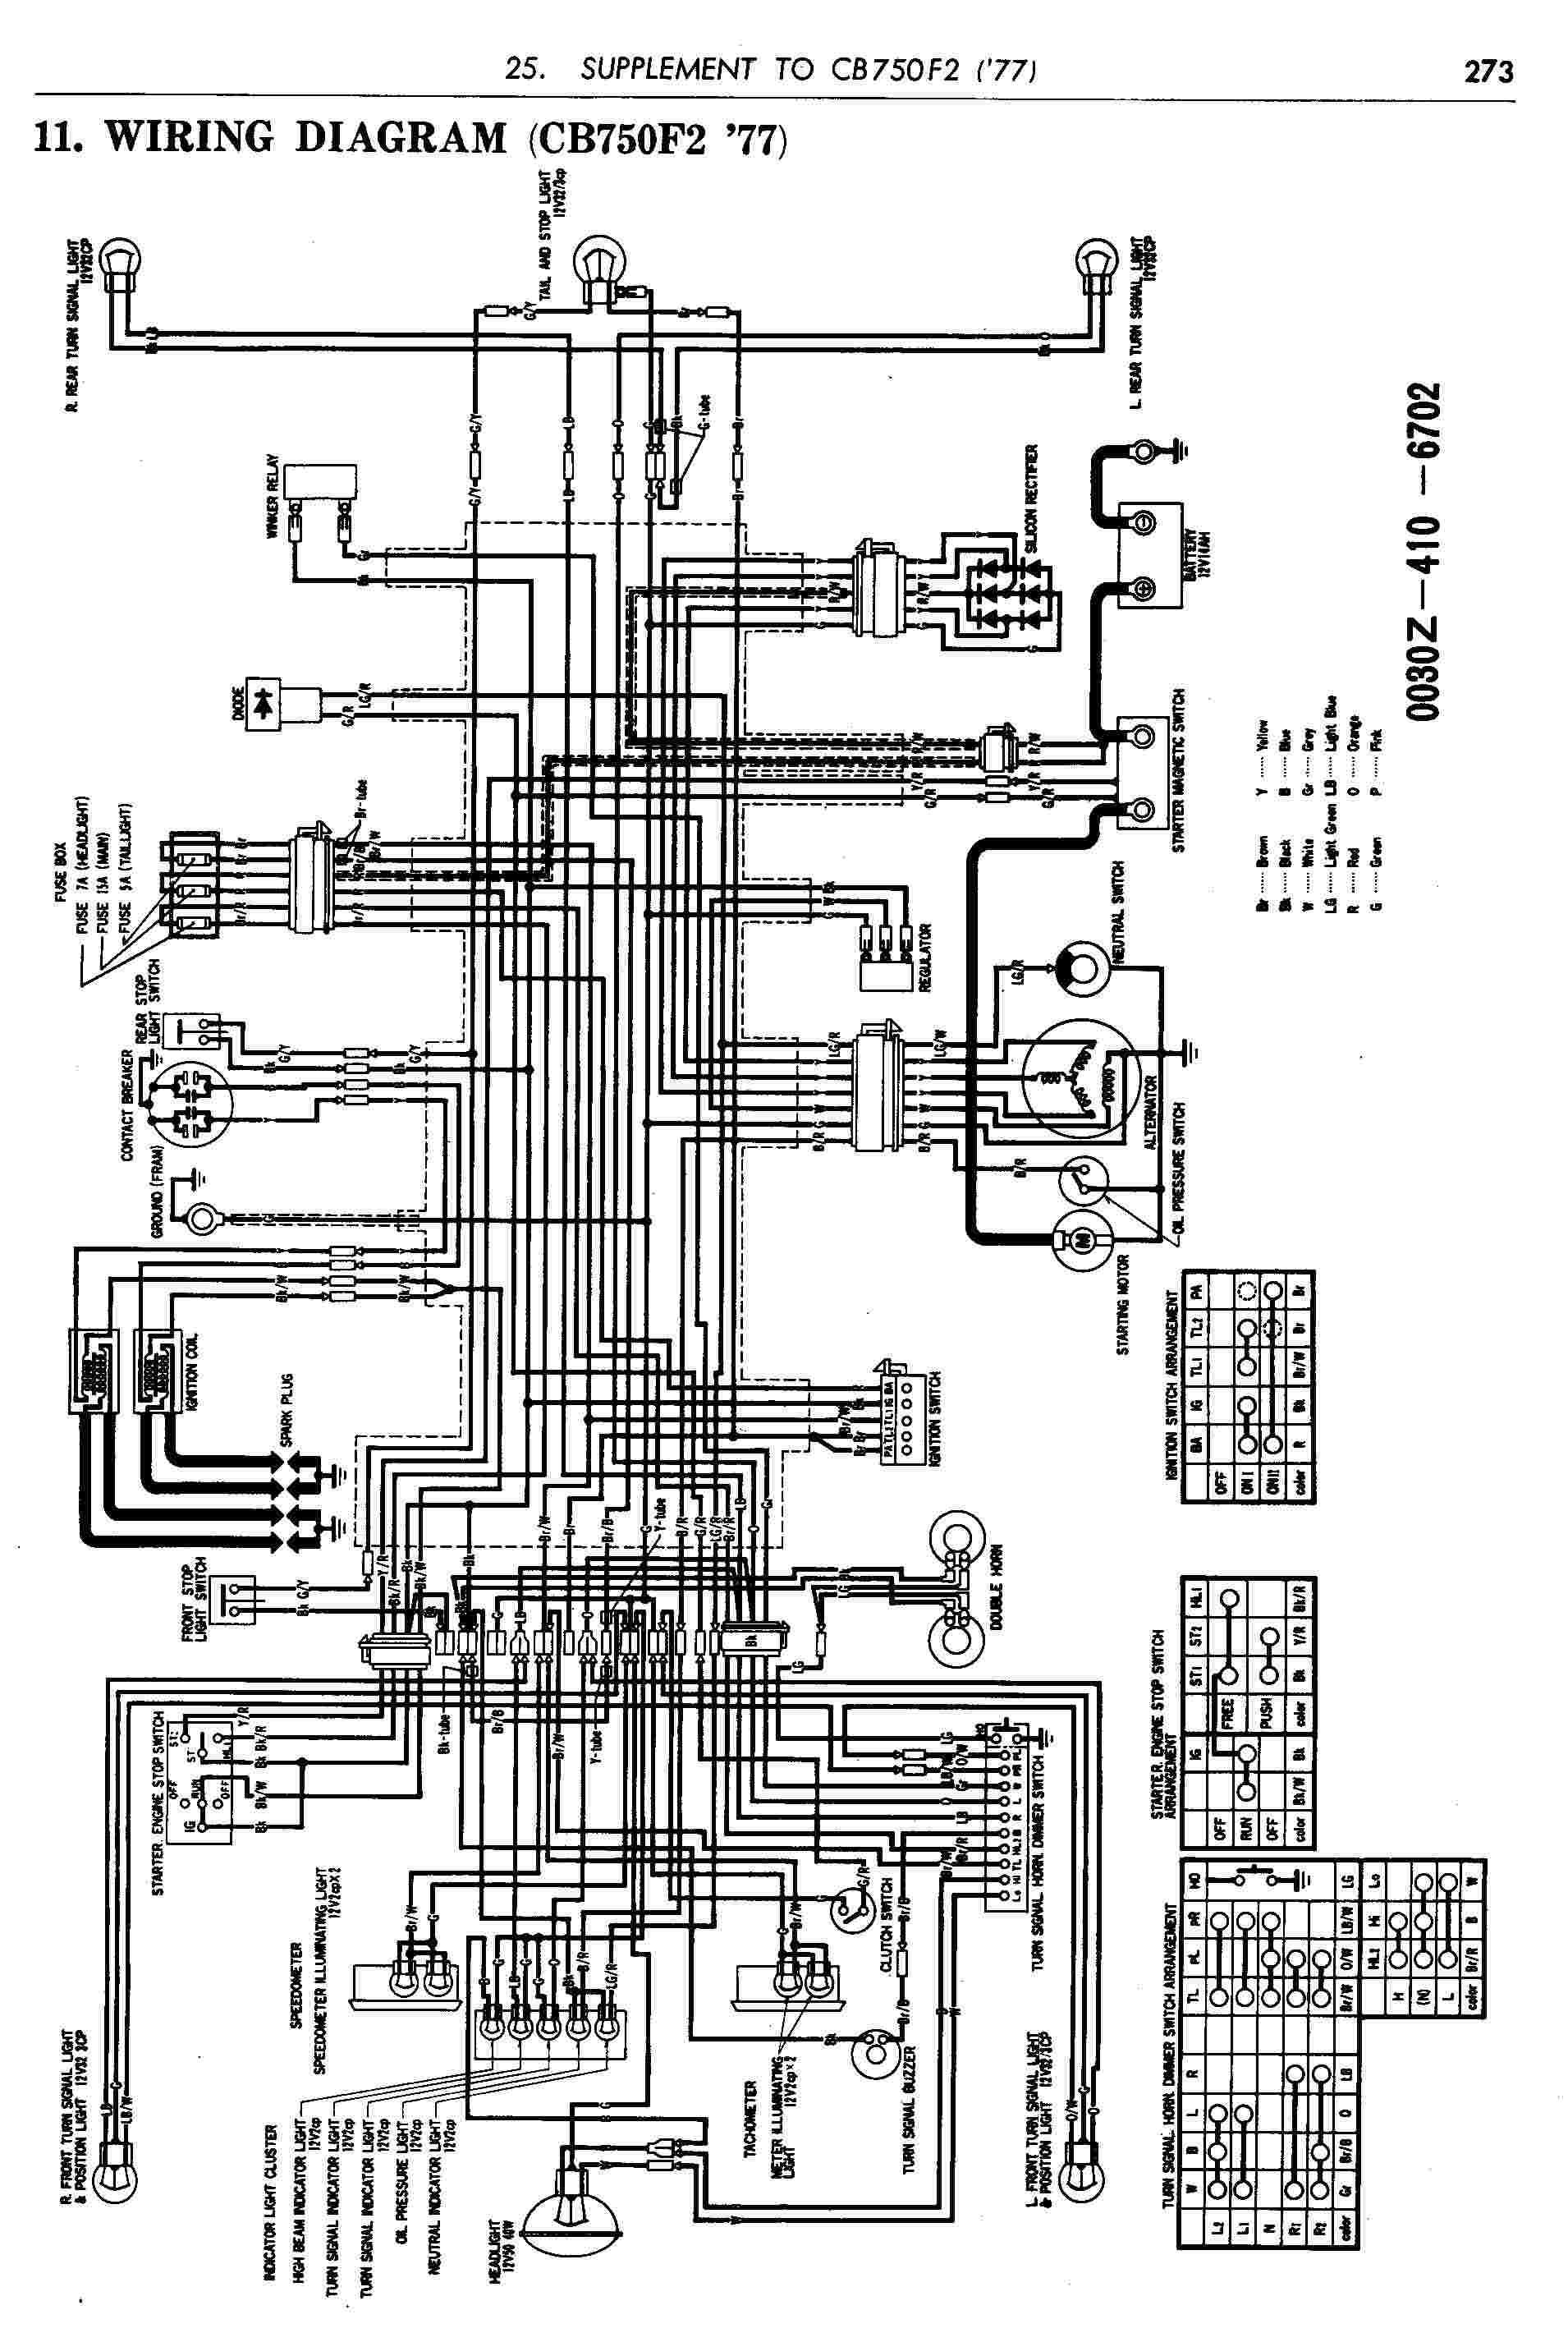 Wiring Diagram Honda Scooter : Honda motorcycle wiring diagrams cb f electrical